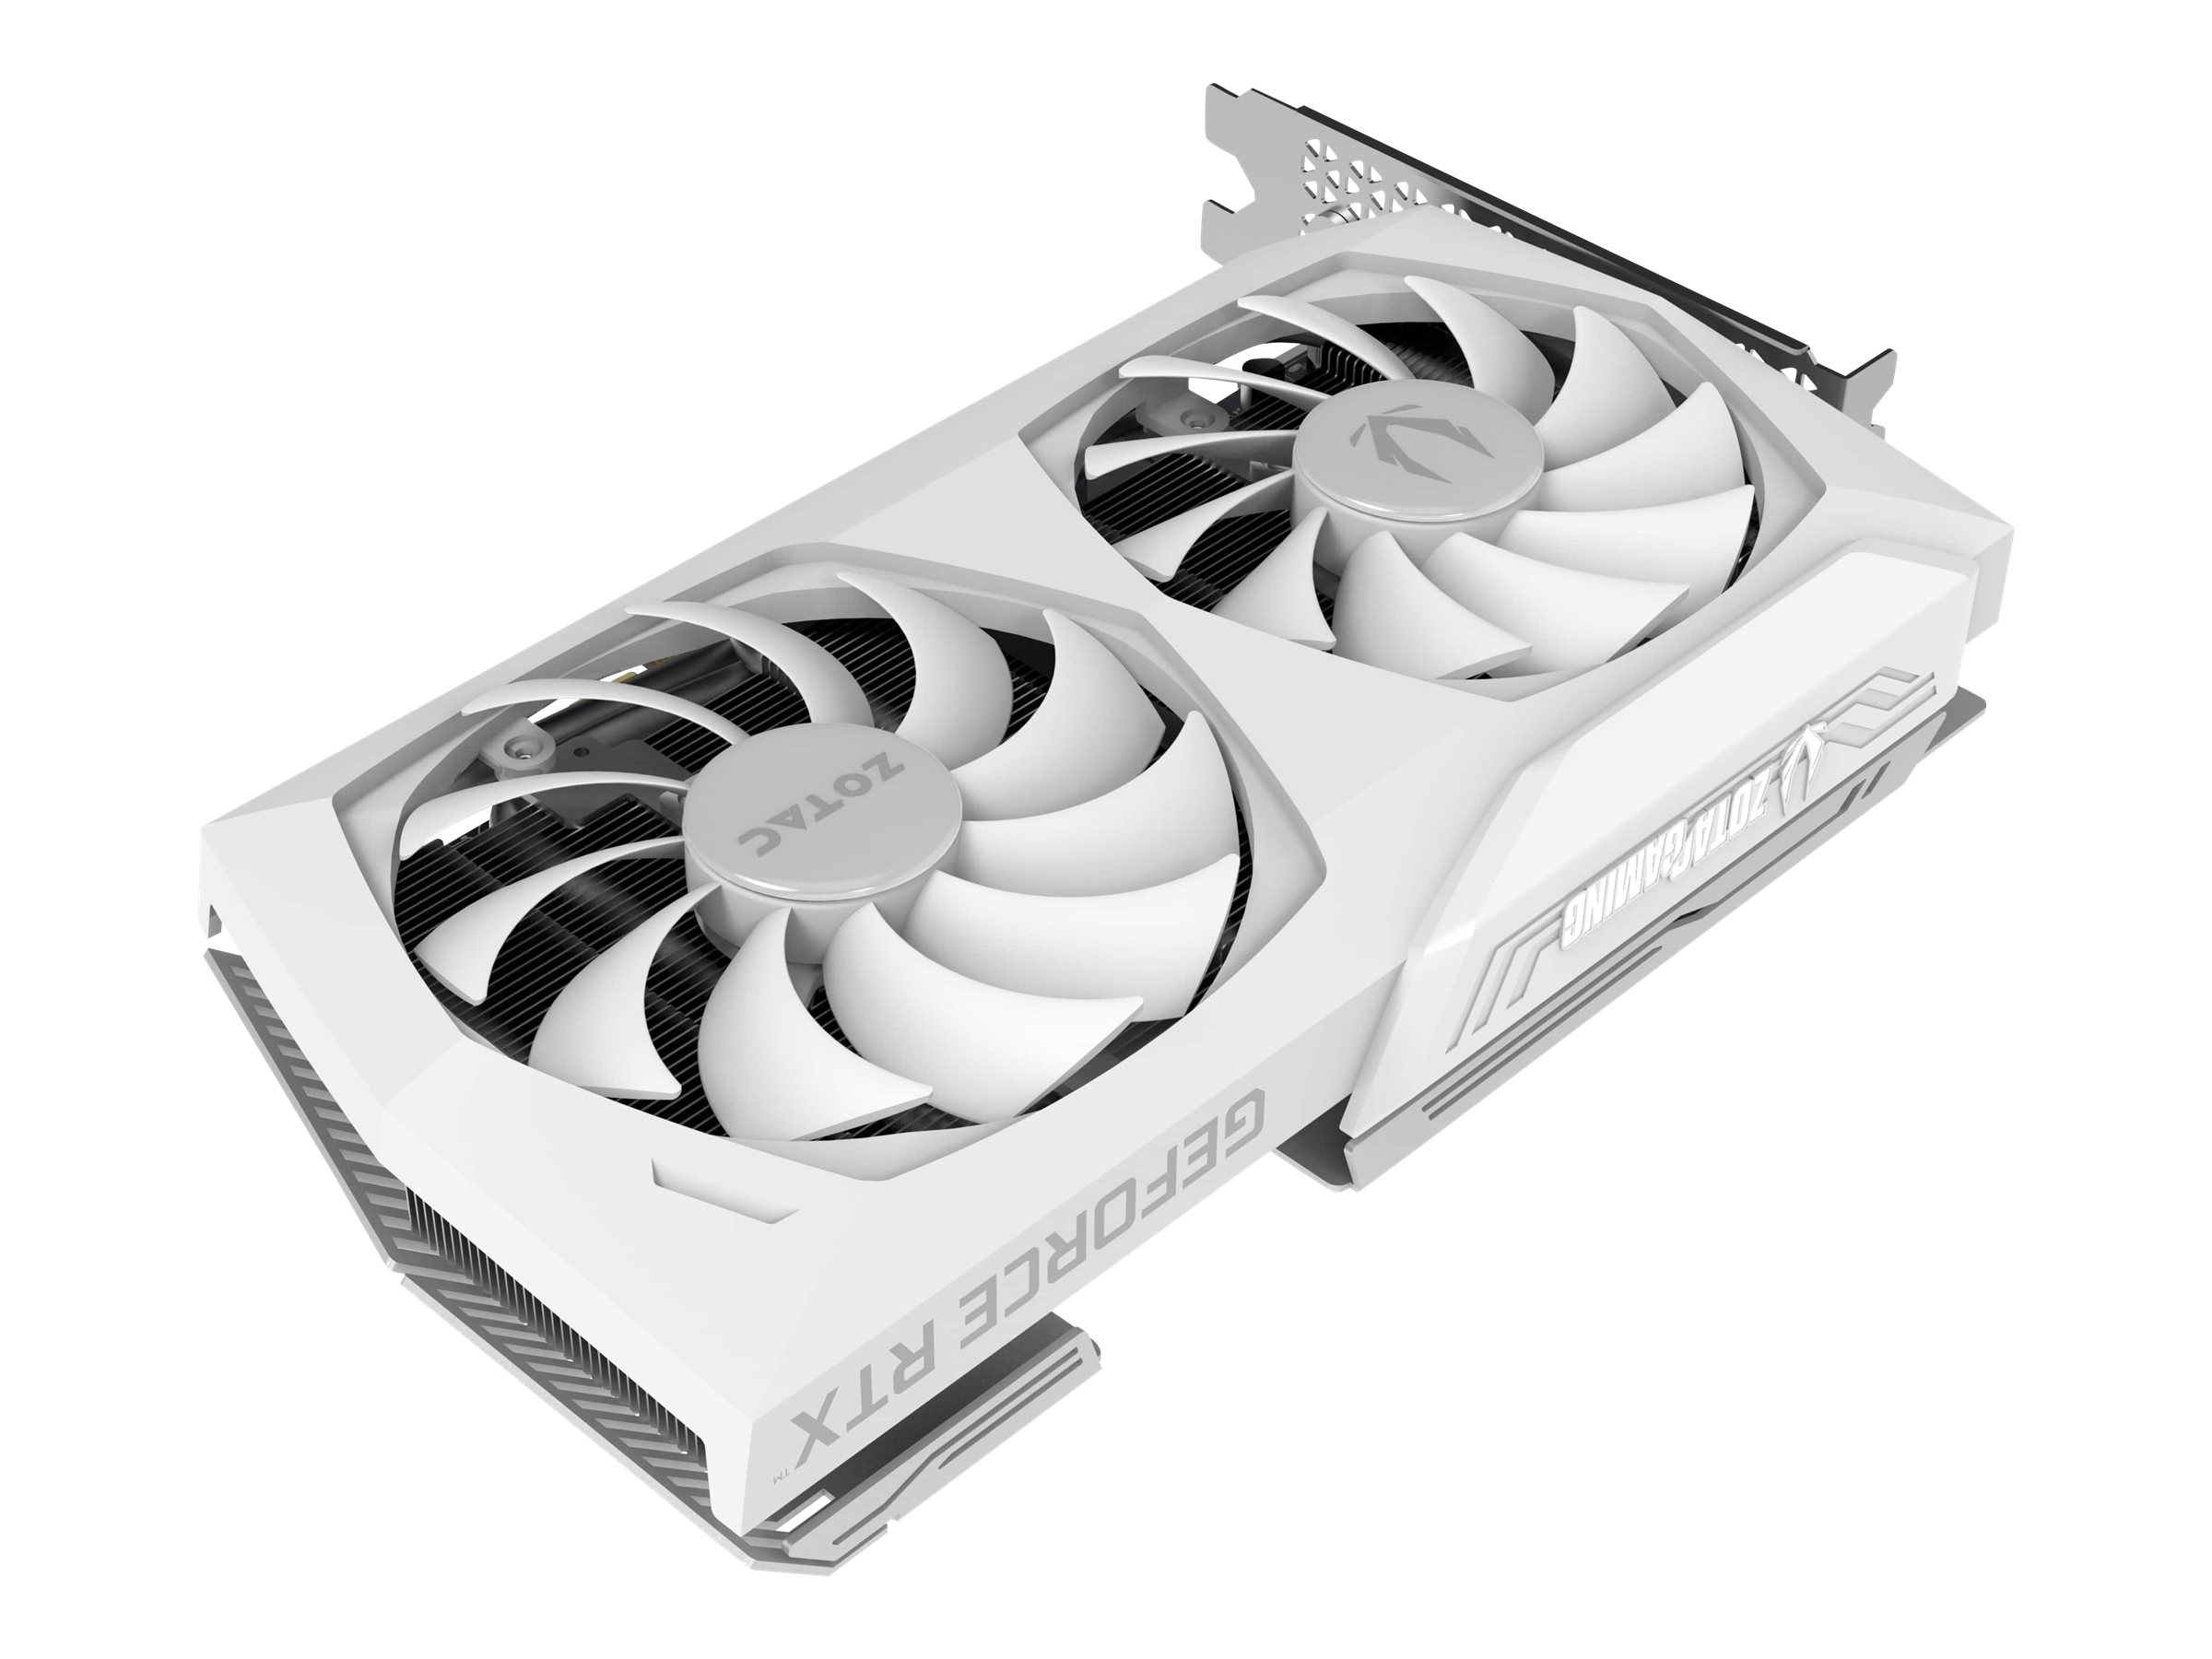 ZOTAC GAMING GeForce RTX 3060 AMP - White Edition